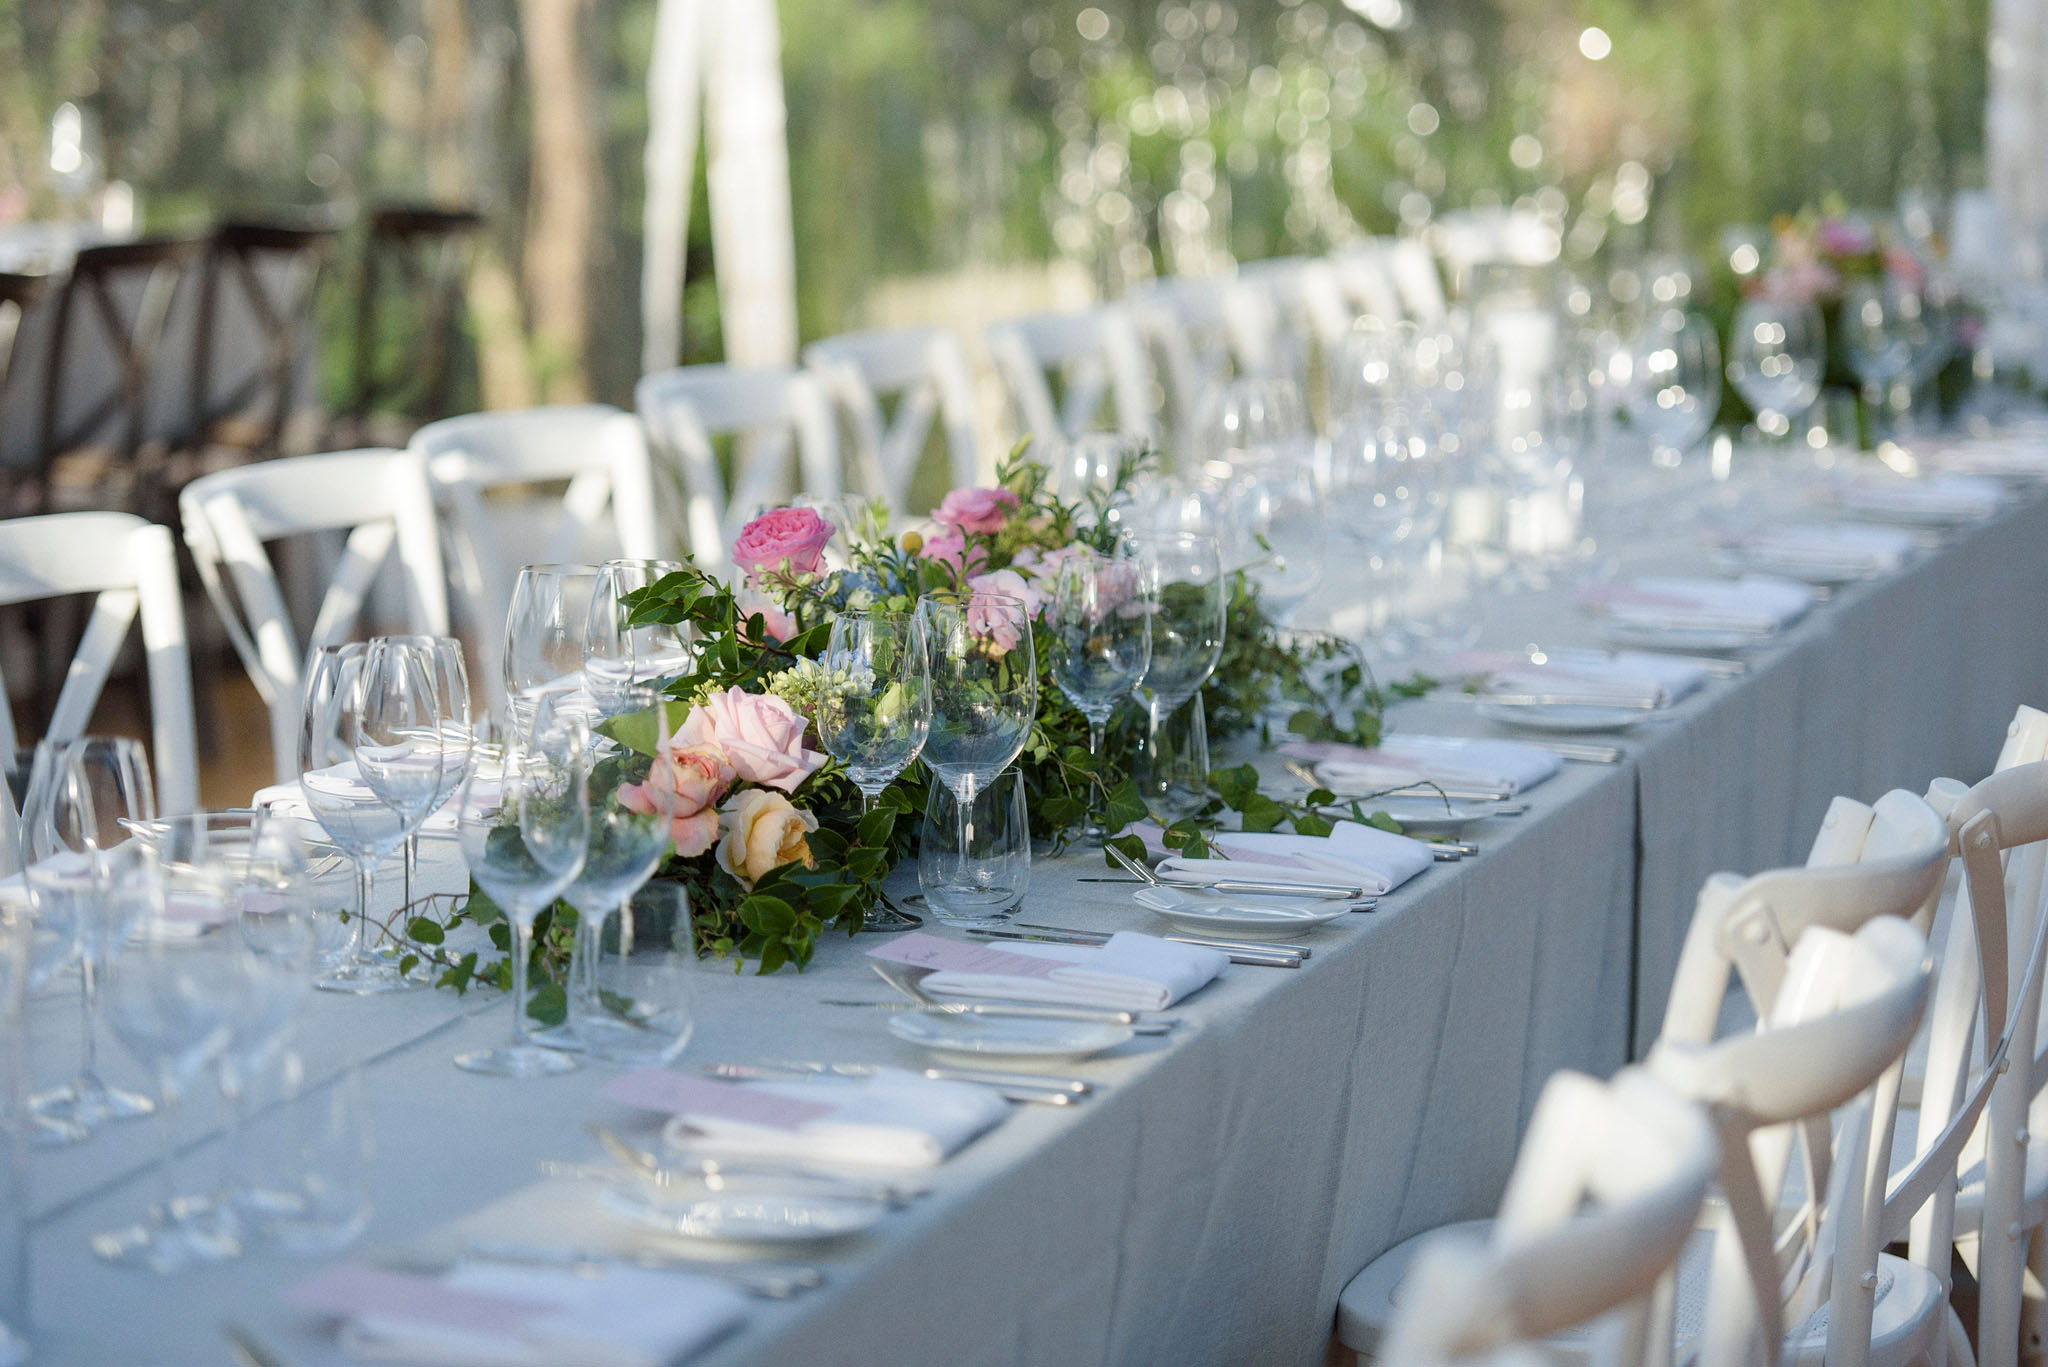 Low lying modern table arrangements with lush greenery and pastel blooms